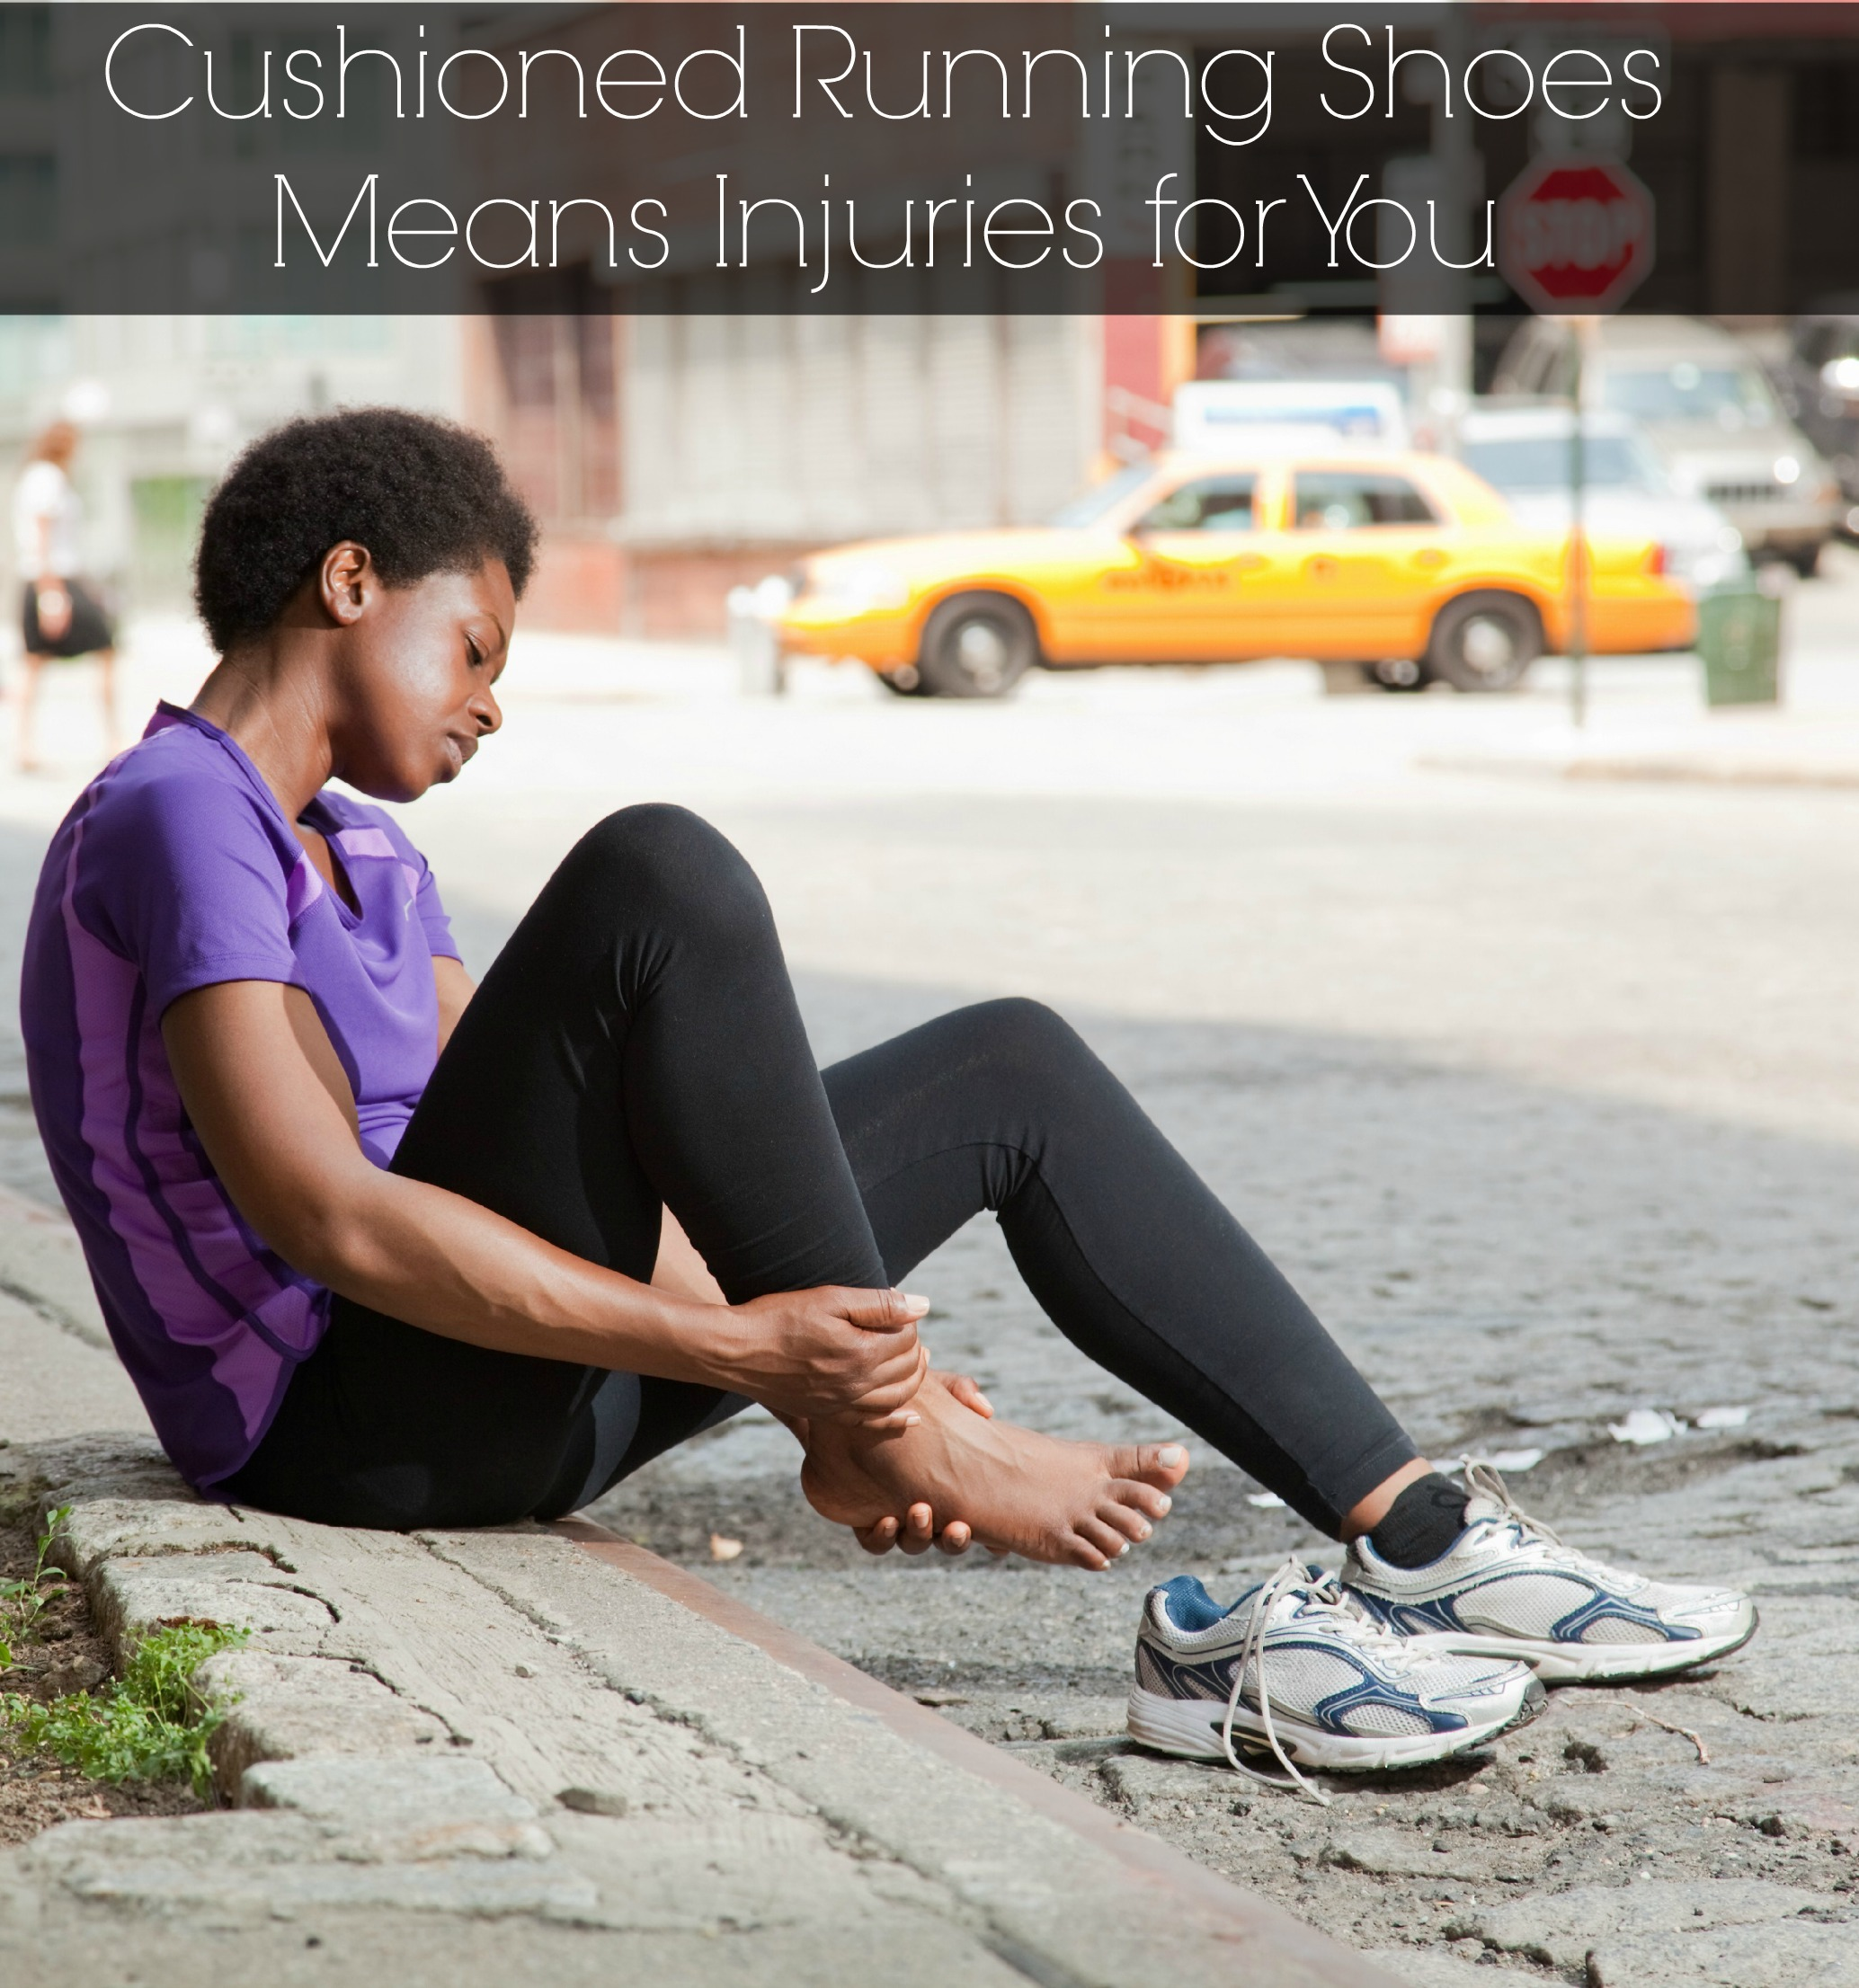 Cushioned Running Shoes Means More Injuries for You